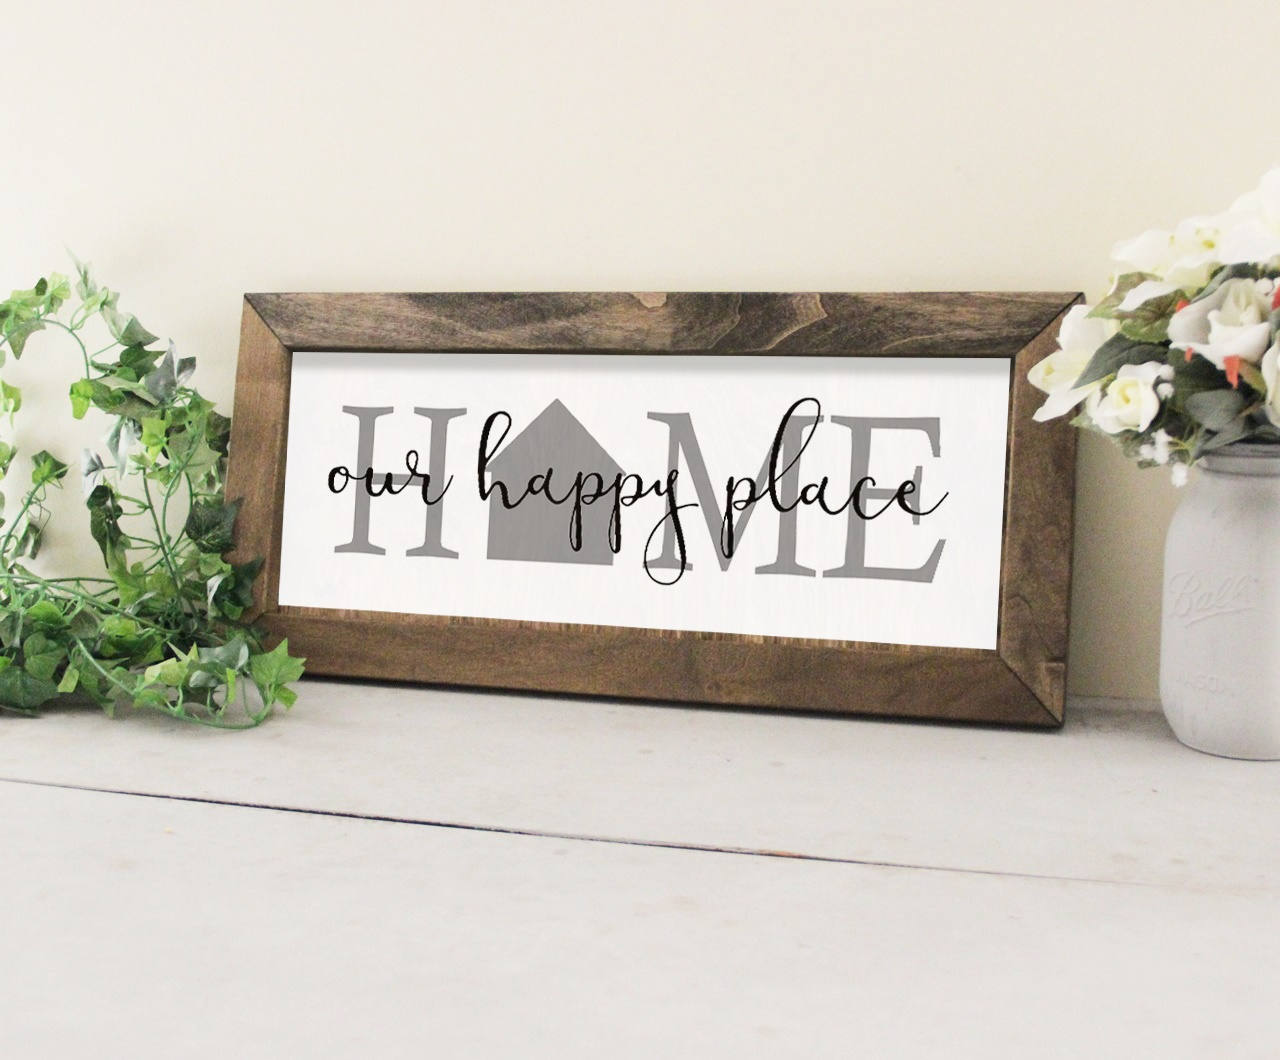 Home Our Happy Place, Wedding Gift Idea, Wood Framed Wall Sign ...